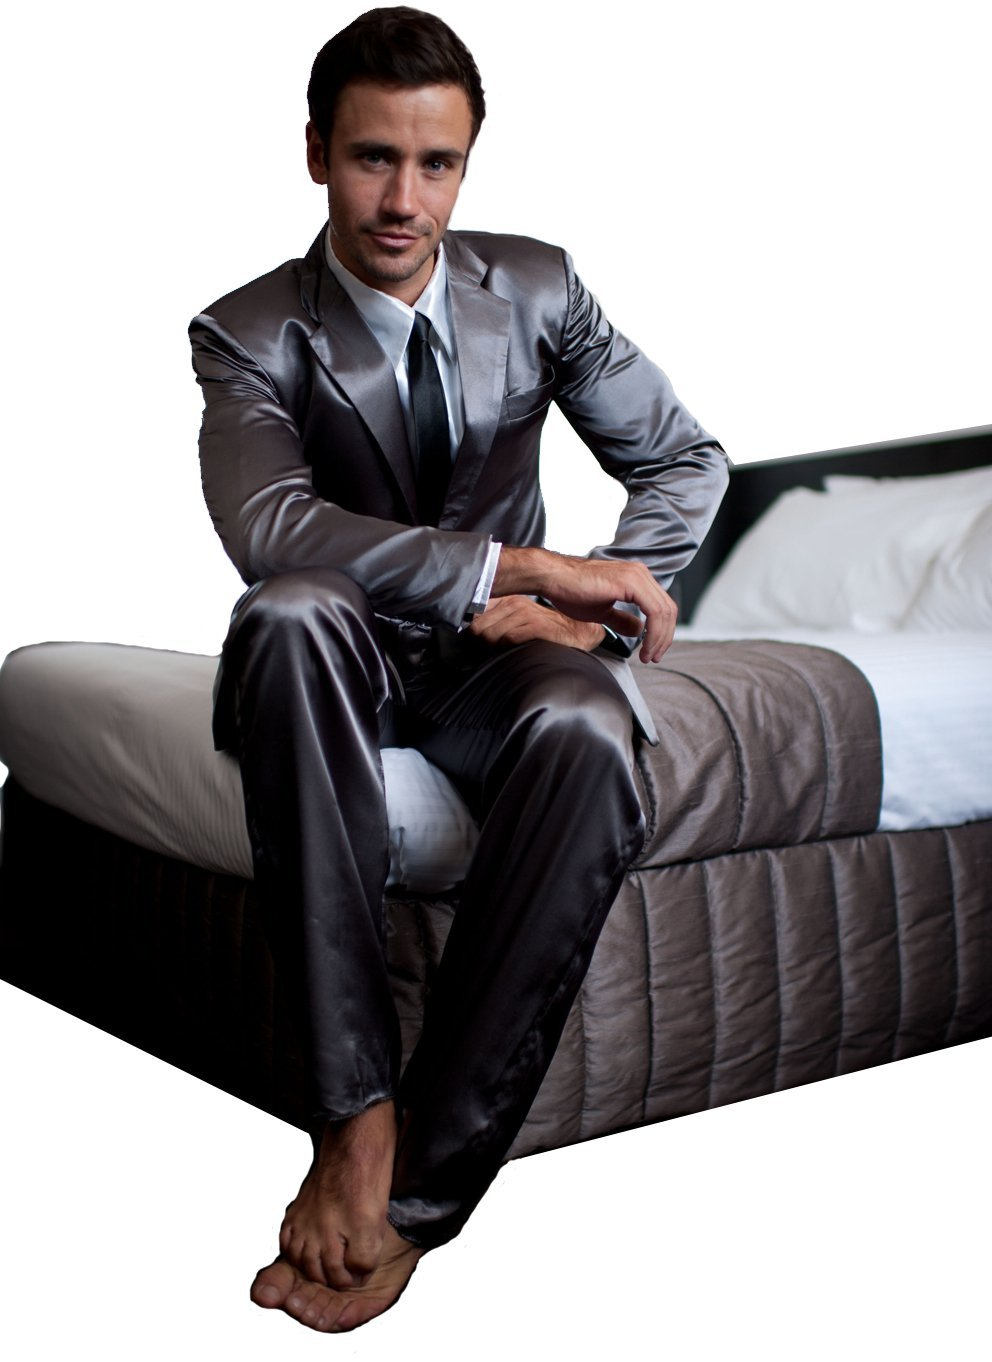 Styling Snoozing With Suitjamas